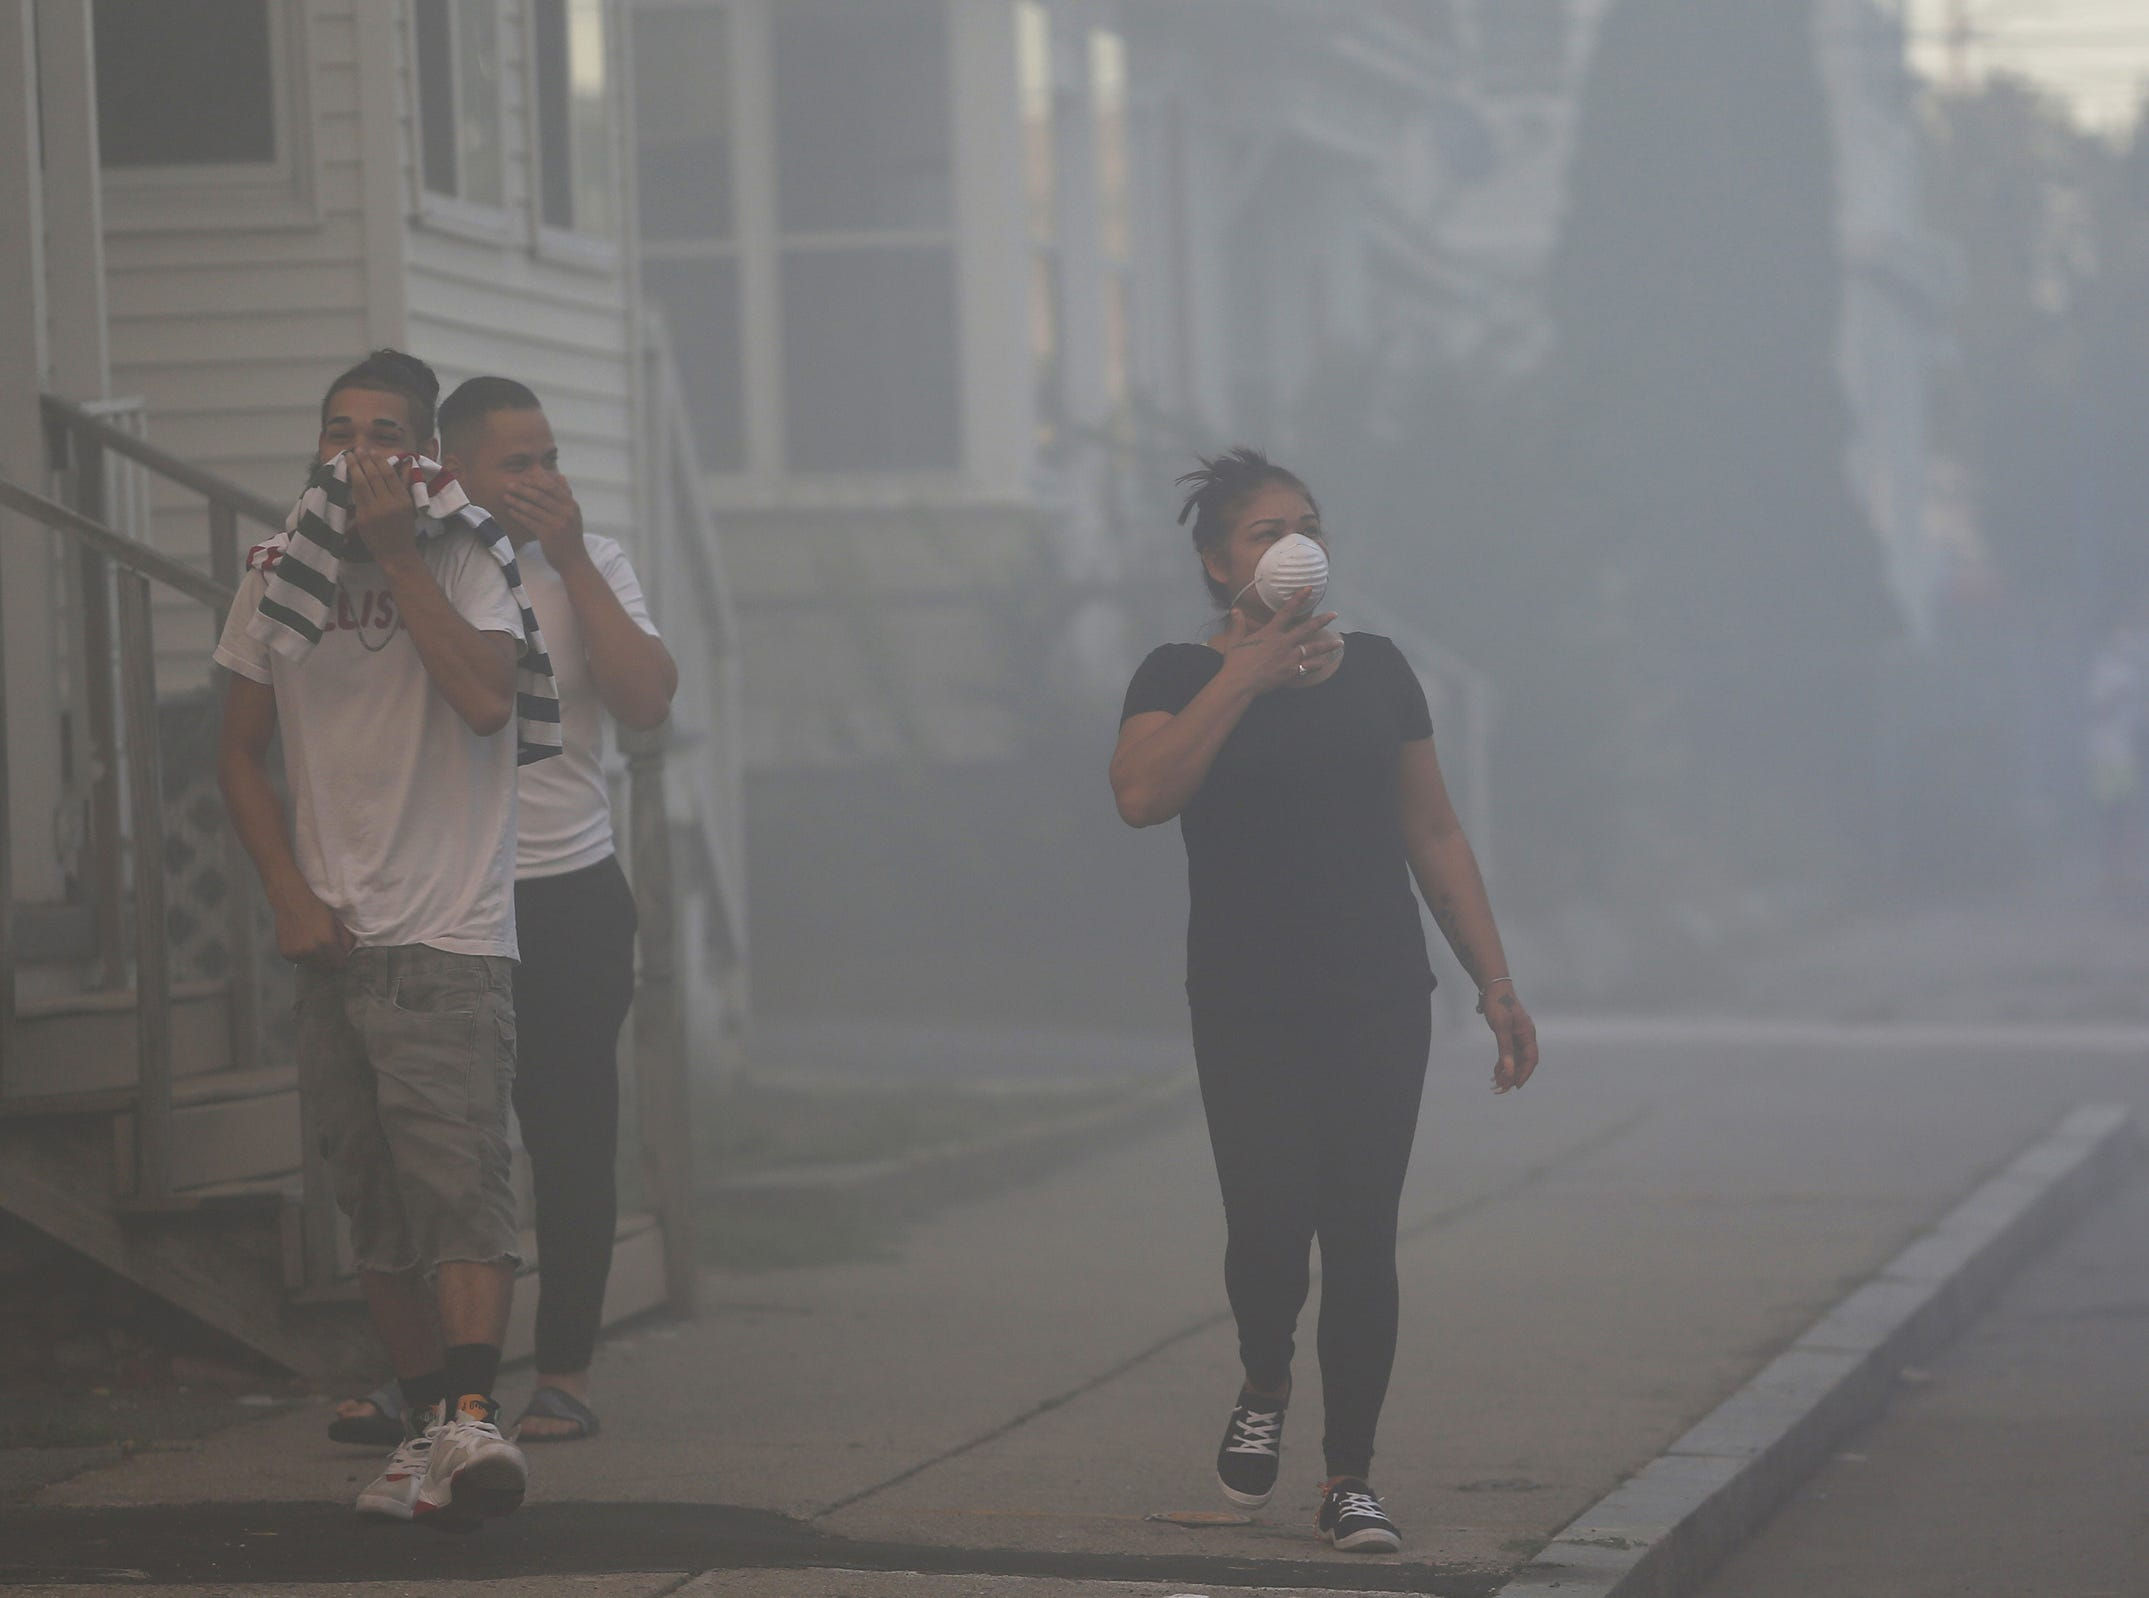 People cover their faces to protect themselves from heavy smoke from a fire on Bowdoin Street in Lawrence, Mass., Thursday, Sept. 13, 2018. The company that owns Columbia Gas says its crews are performing safety checks after a series of fires and explosions erupted in three communities north of Boston.